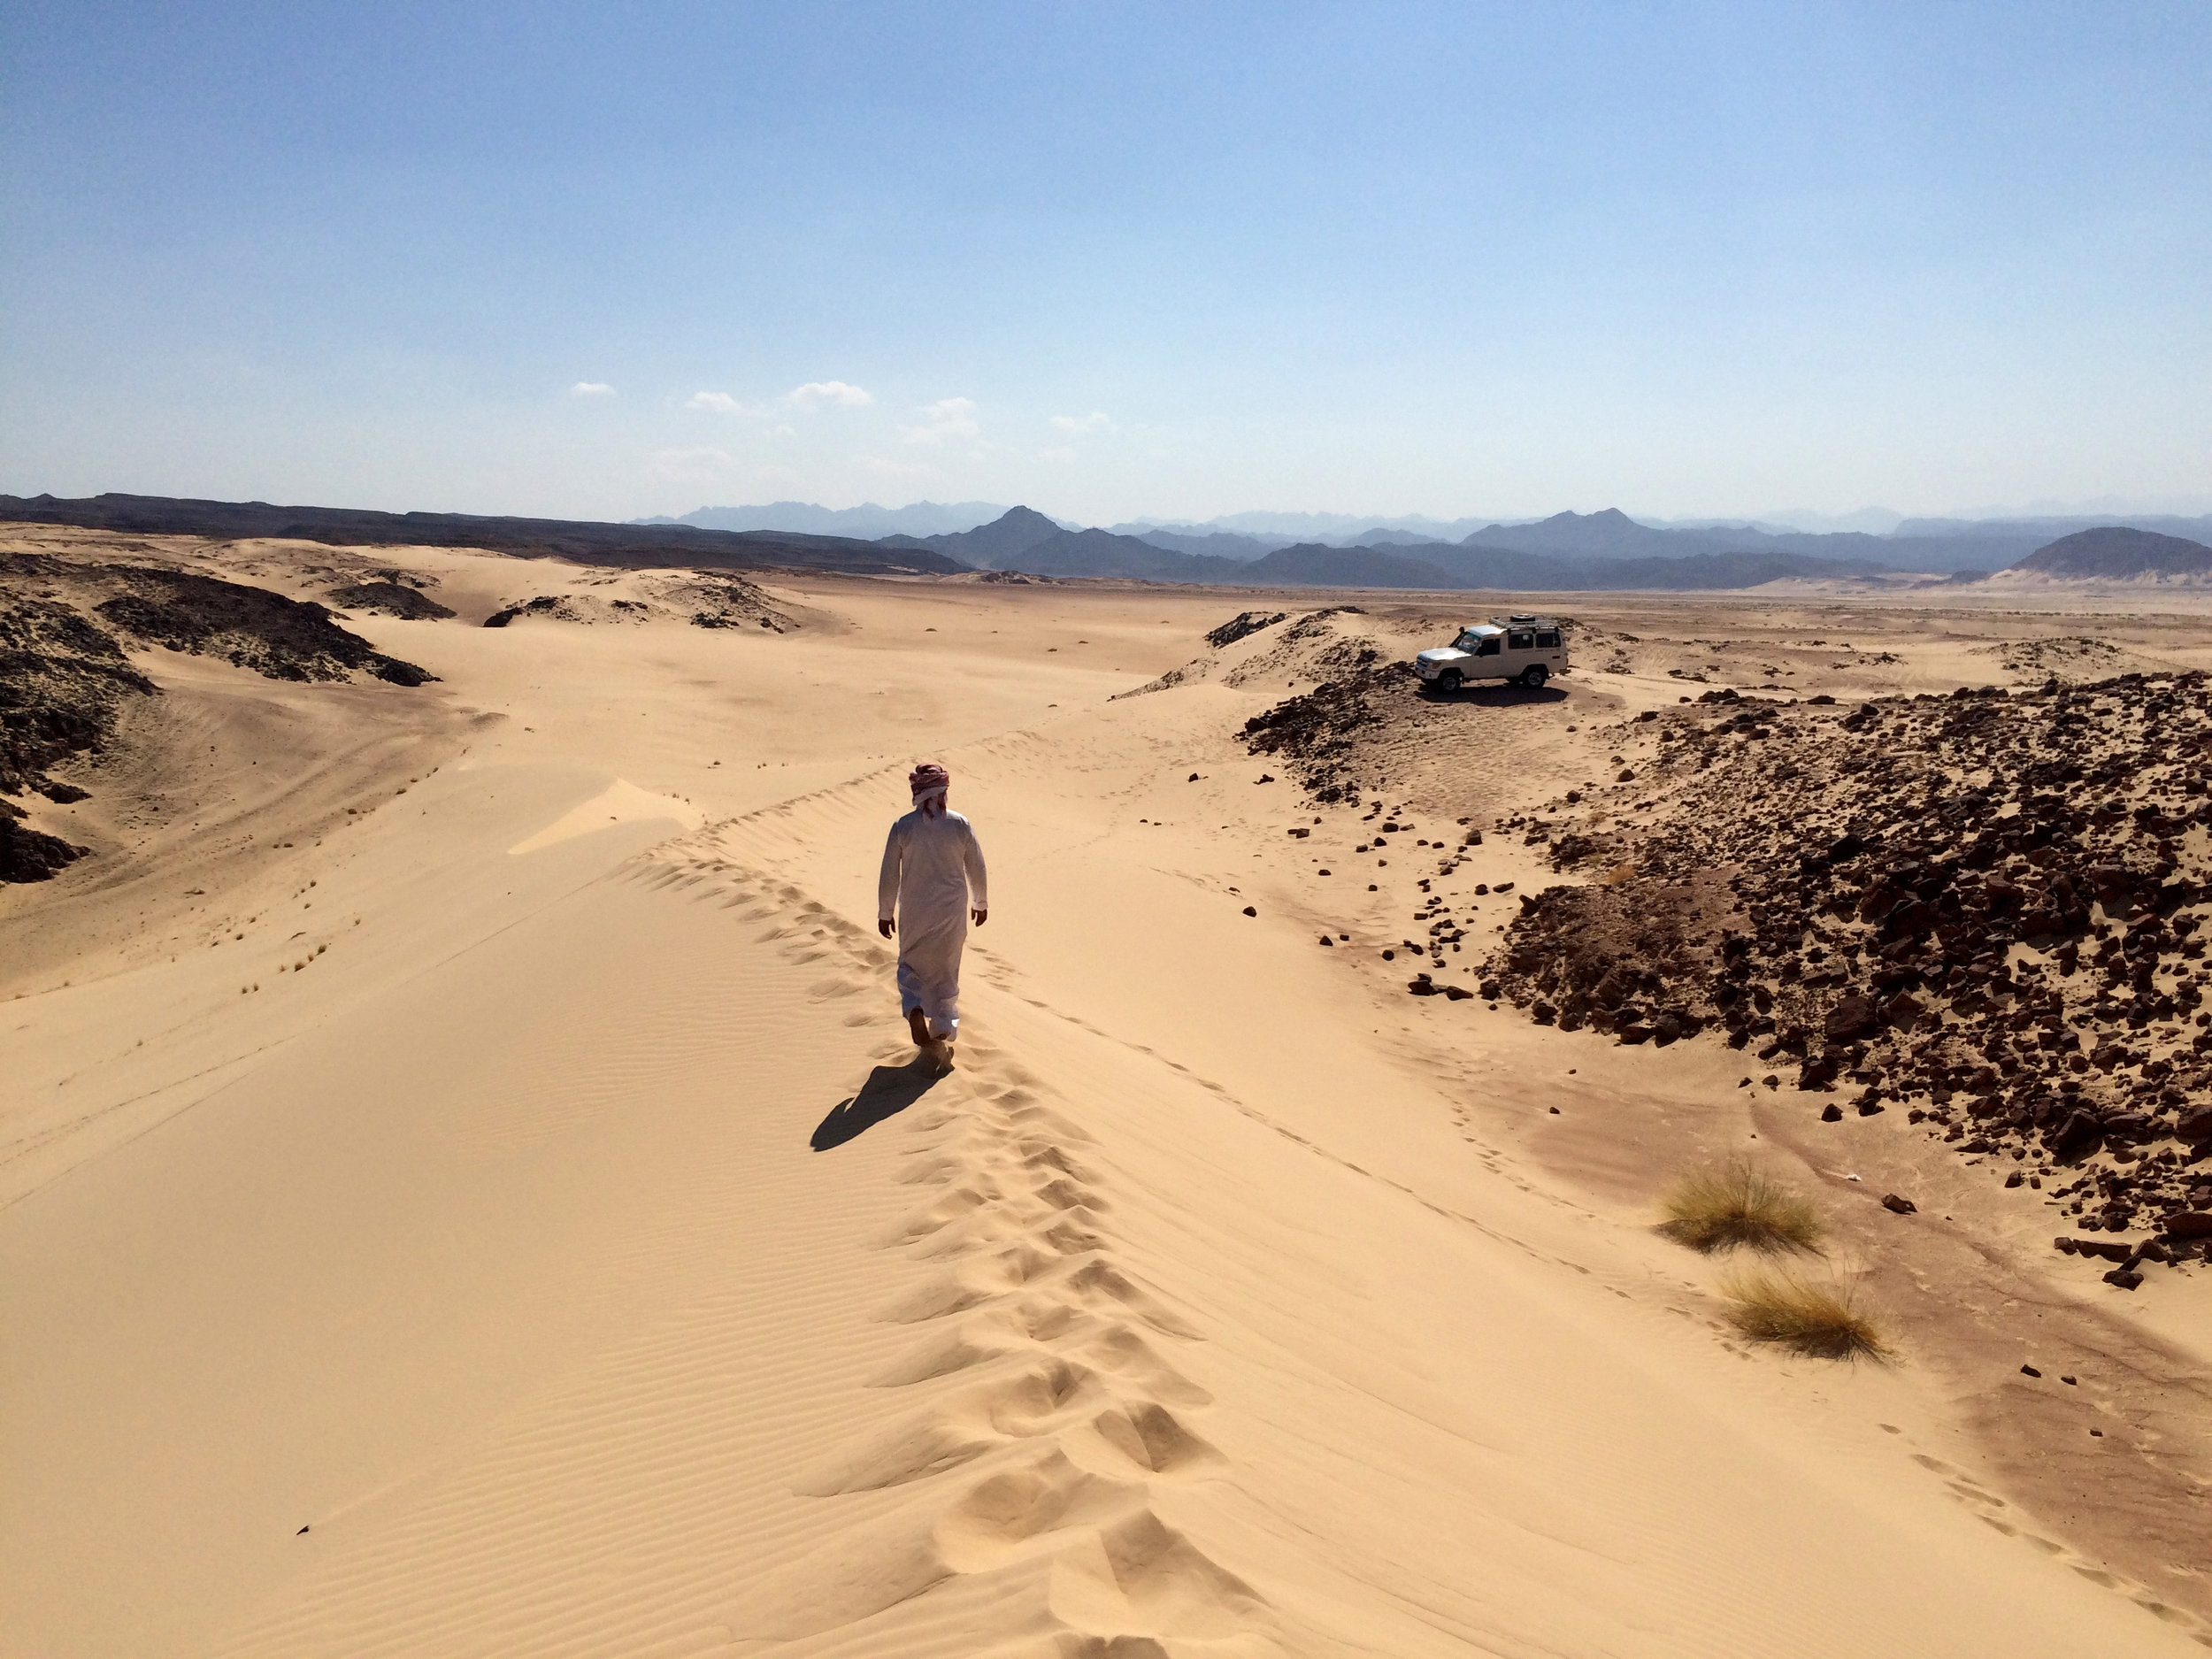 Walking the dune in South Sinai